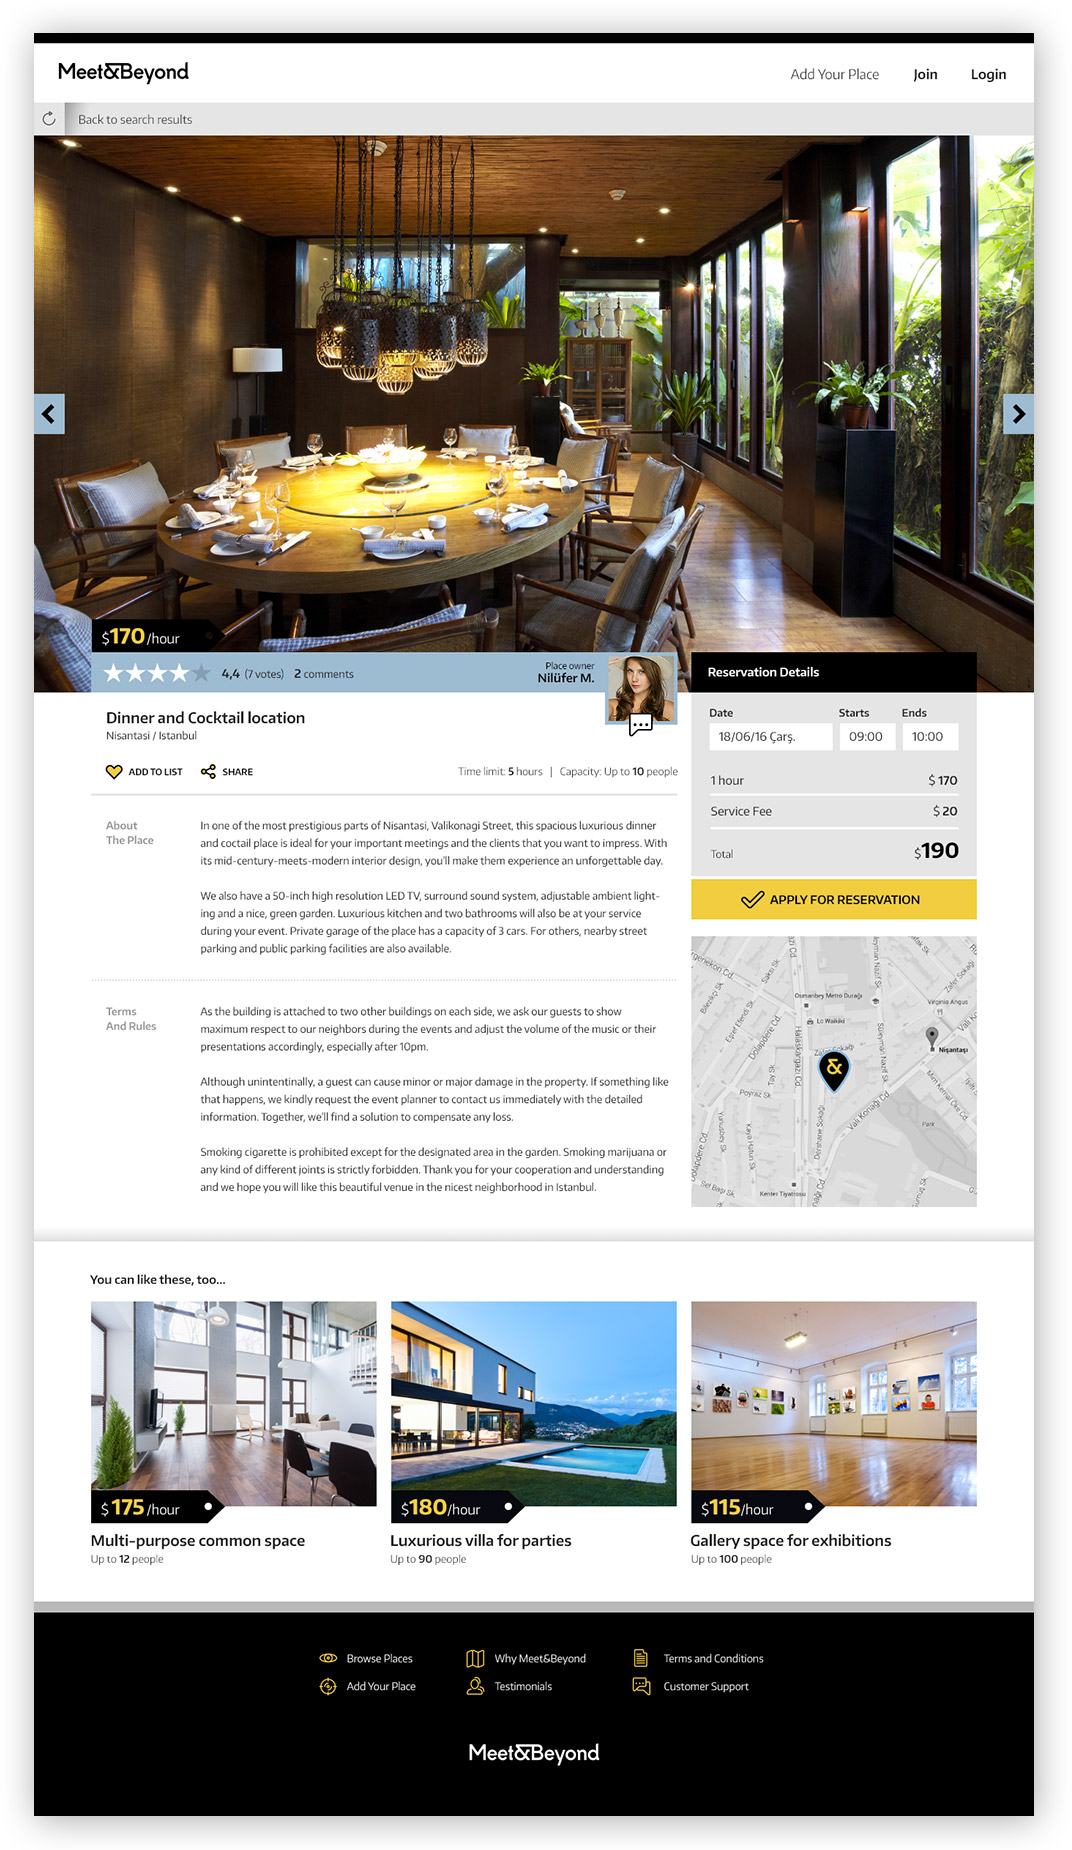 Meet-and-Beyond-Website-Venue-Page-Design